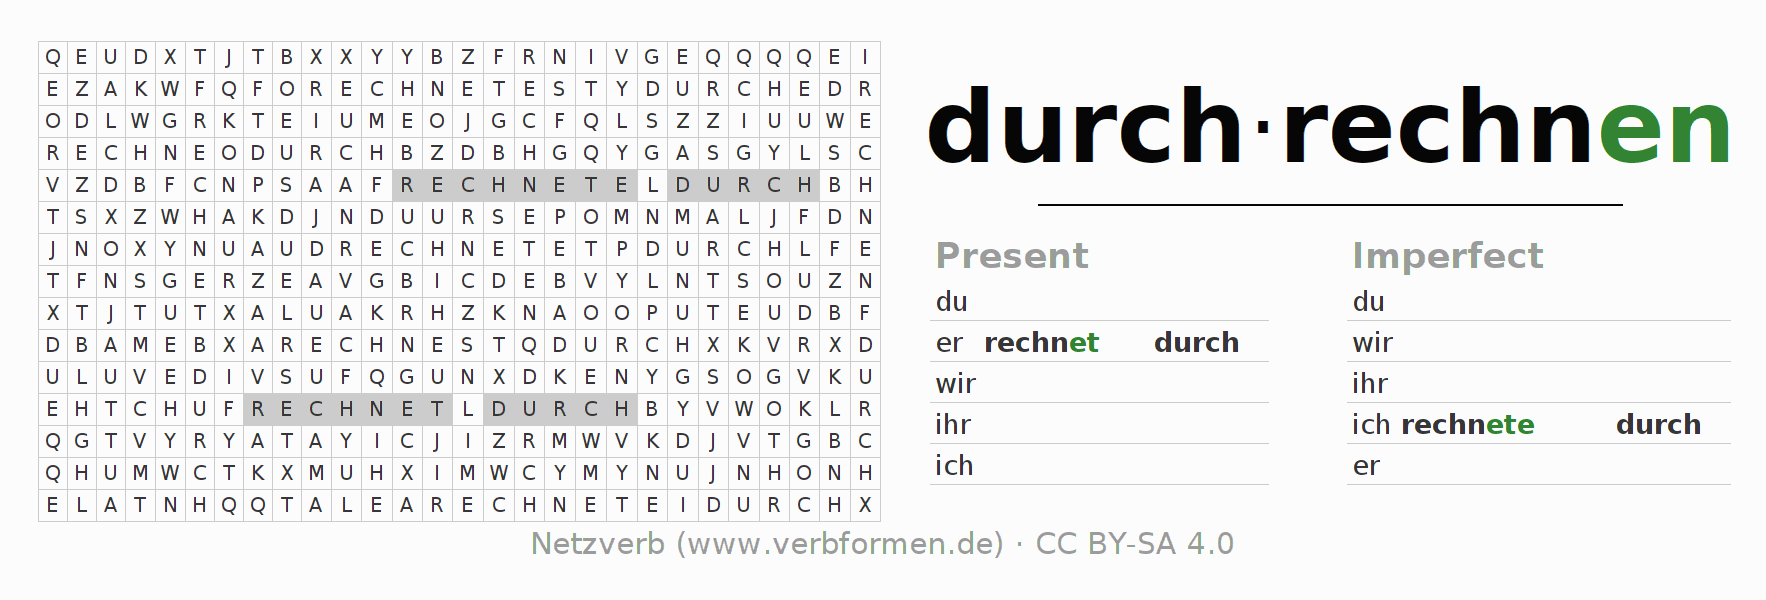 Word search puzzle for the conjugation of the verb durchrechnen